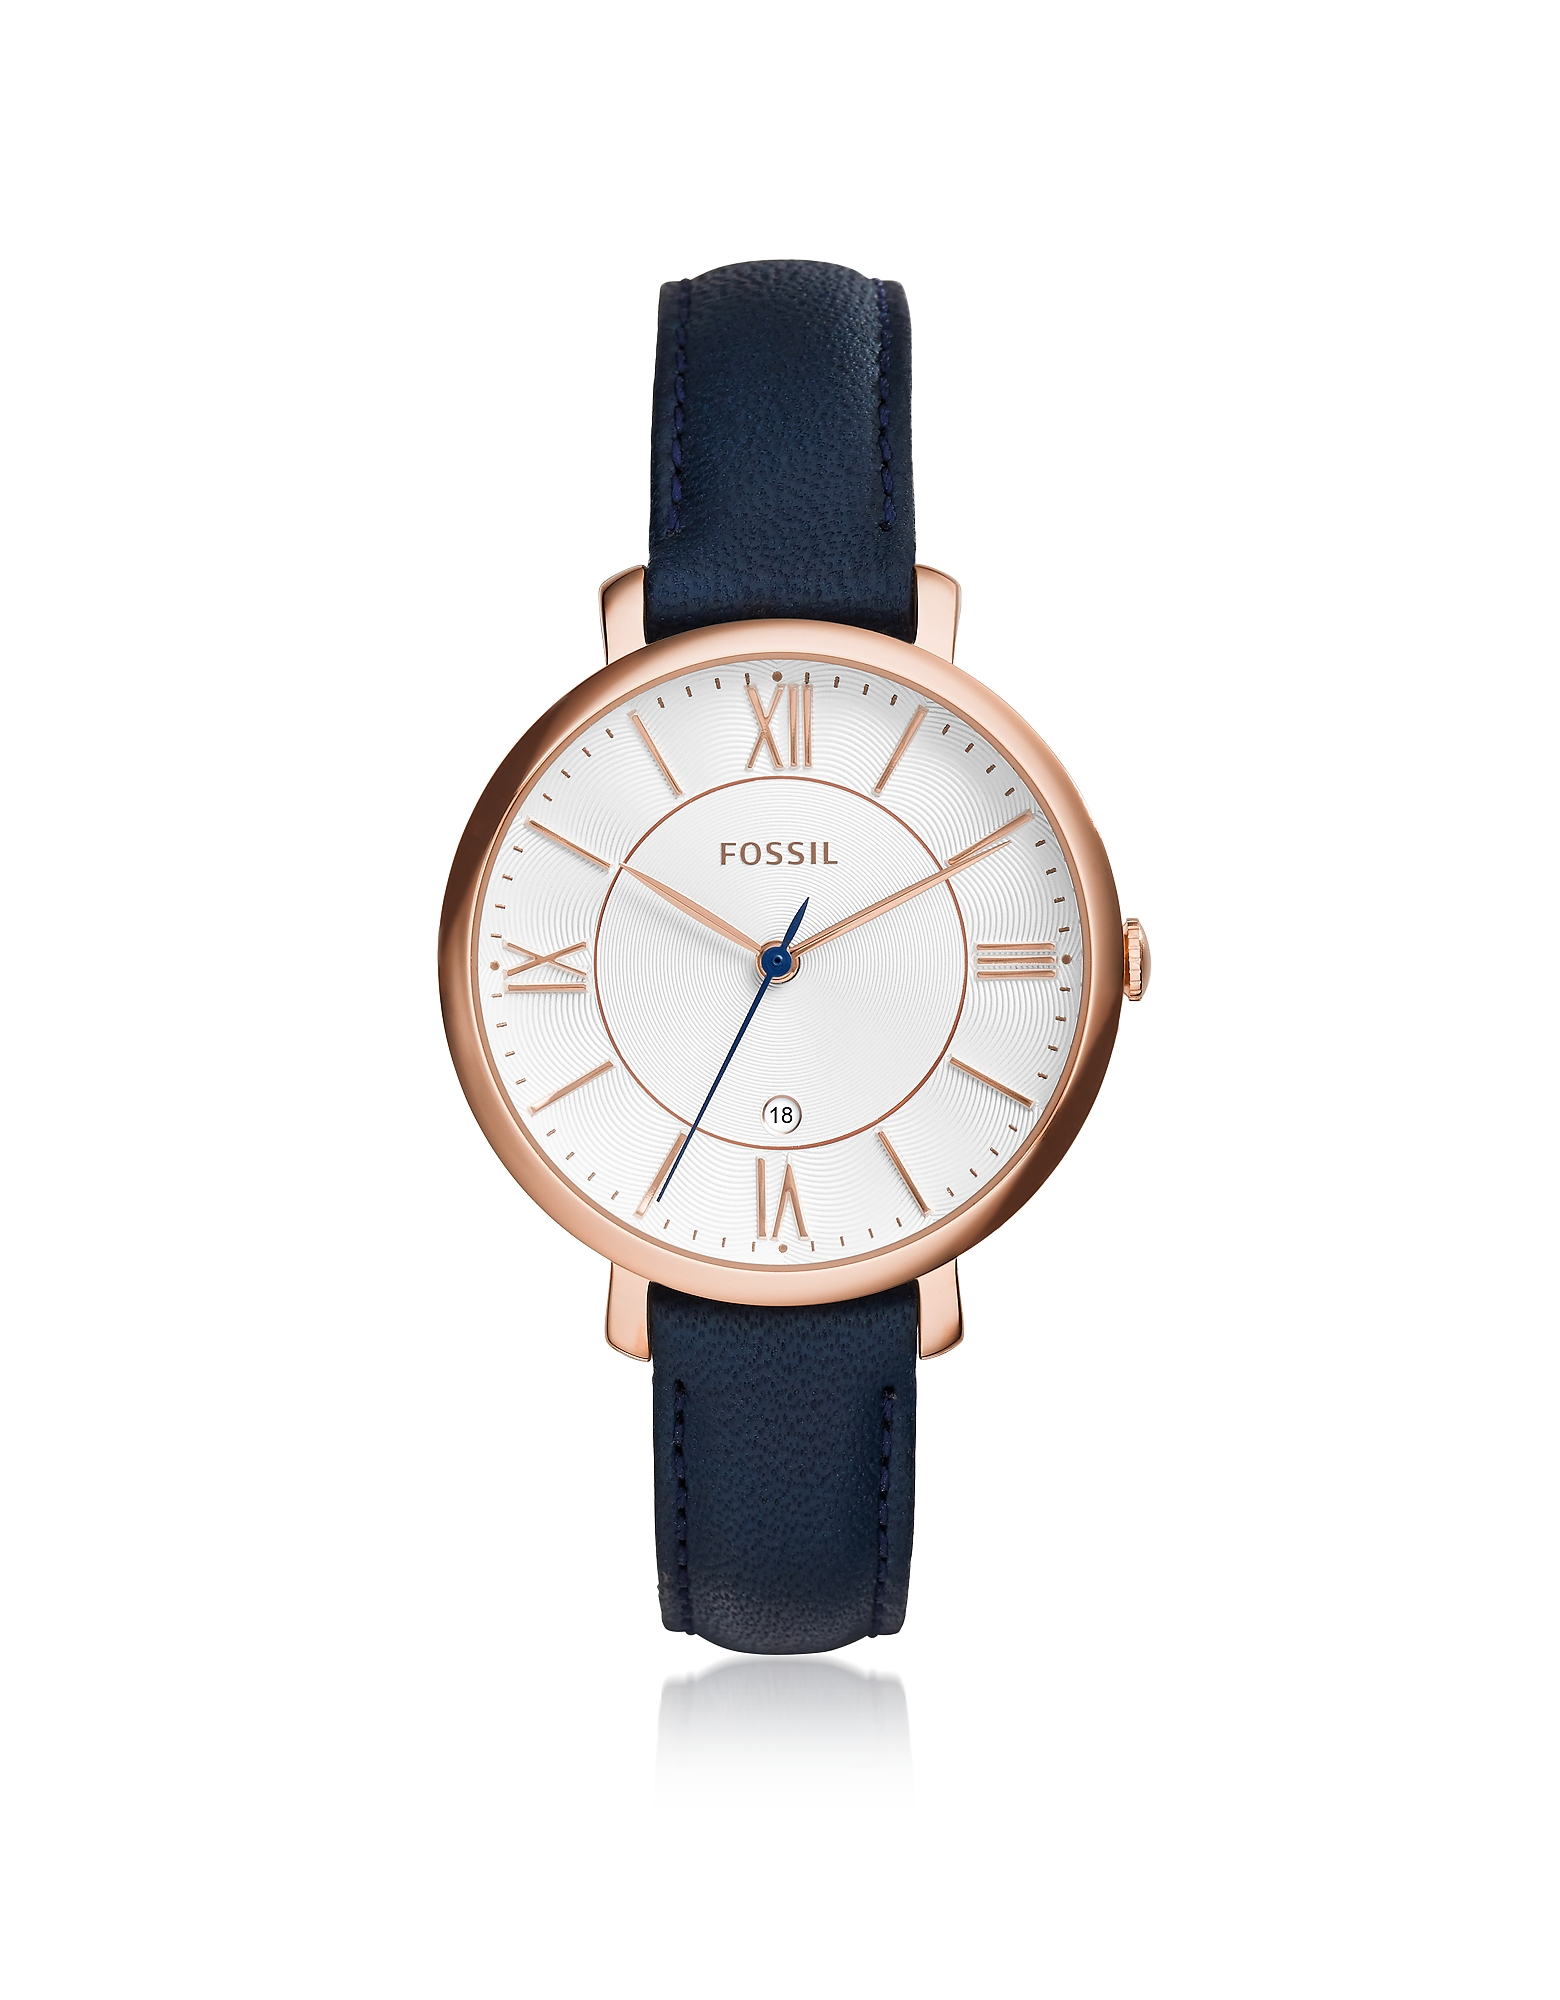 Fossil Women's Watches, Jacqueline Blue Leather Women's Watch